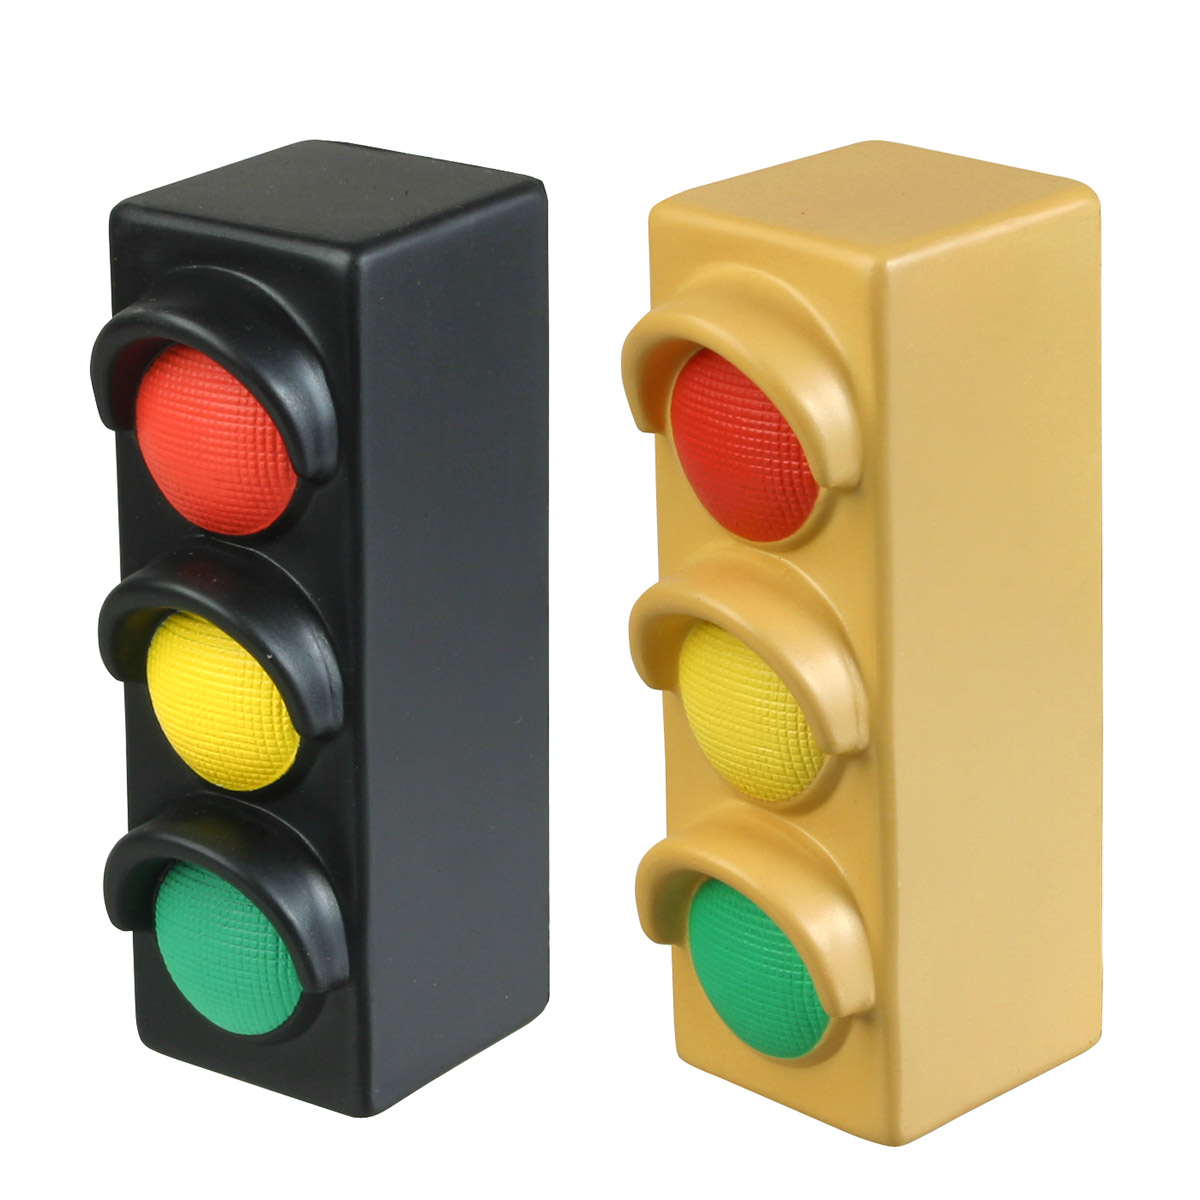 Traffic Light Stress Reliever, LCC-TL08 - 1 Colour Imprint